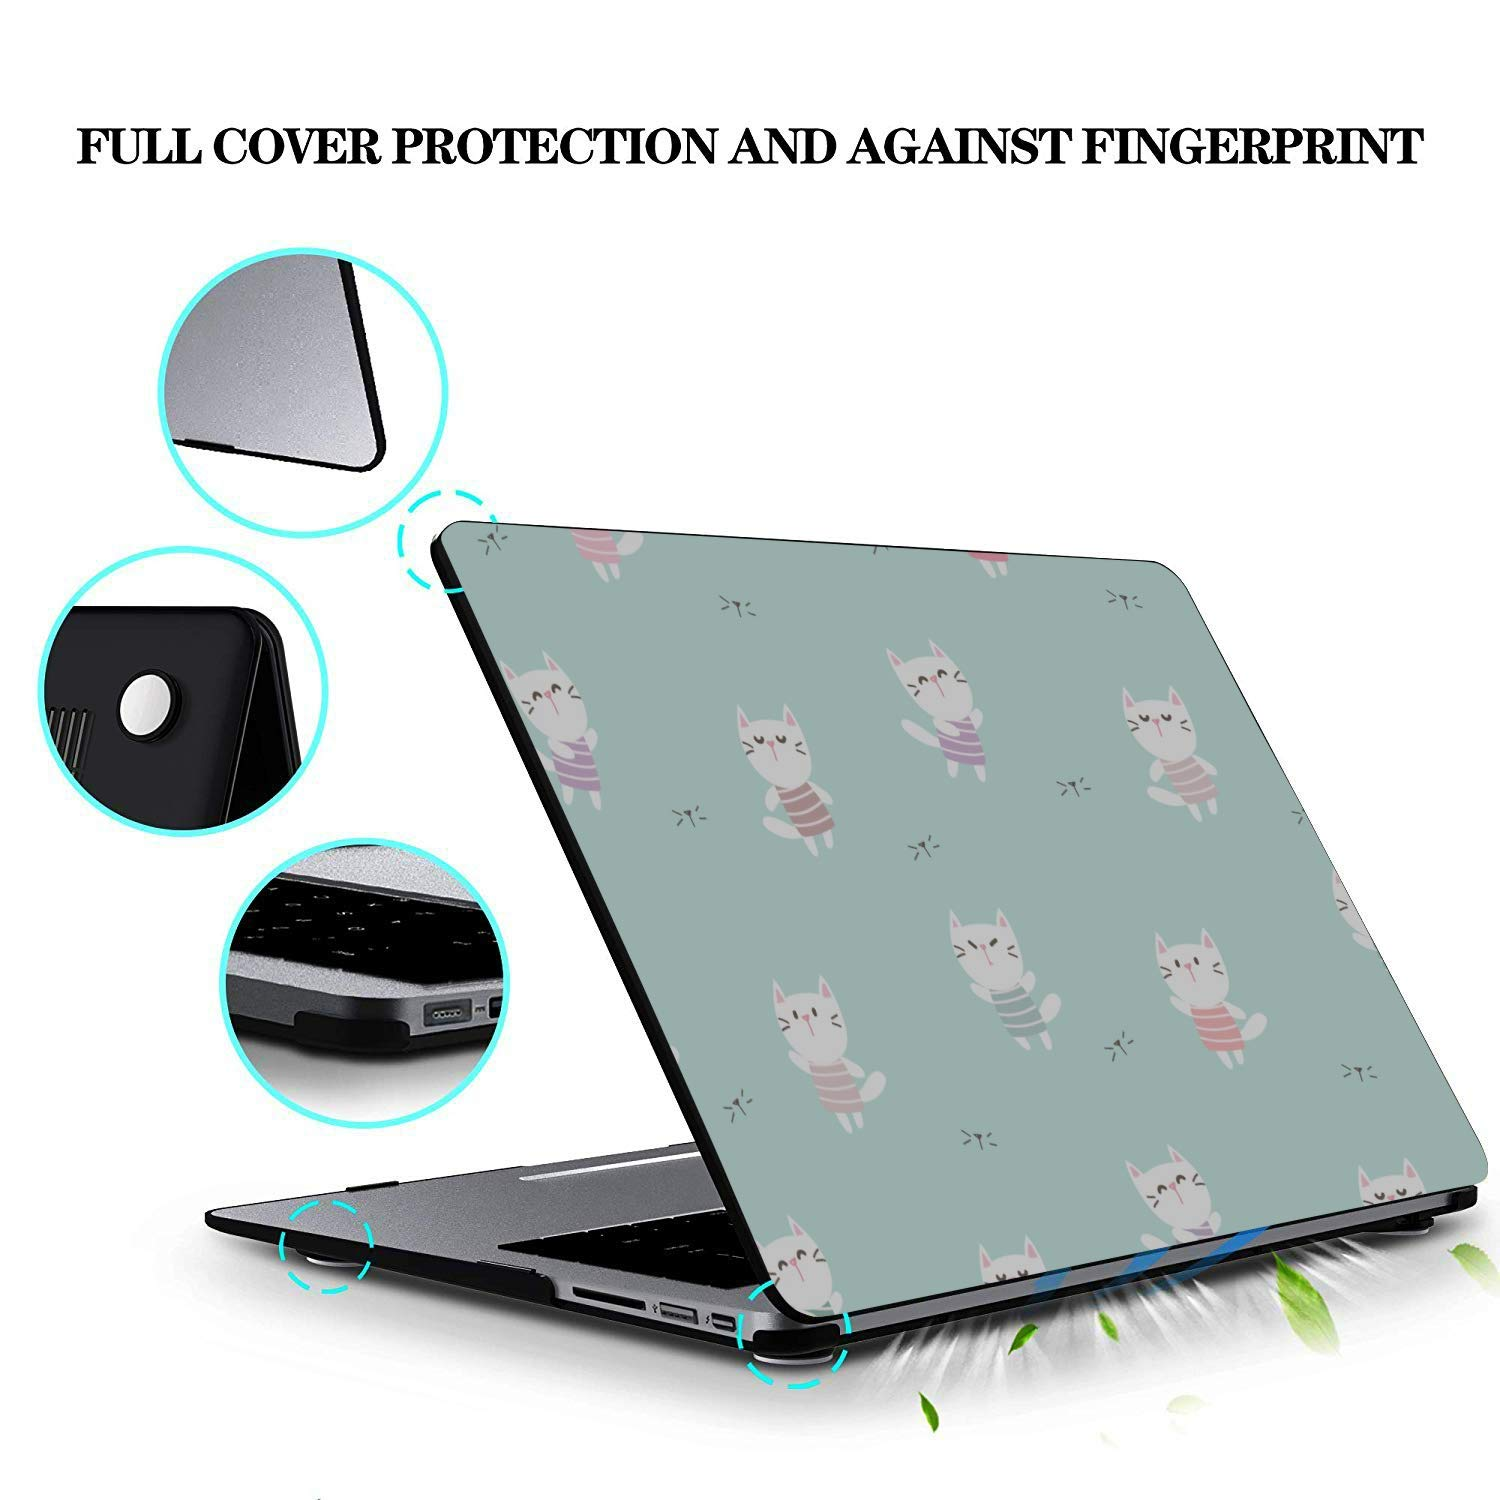 MacBook Computer Case Smart Warm Heart Gift Animal Pet Cat Plastic Hard Shell Compatible Mac Air 11 Pro 13 15 15inch MacBook Pro Case Protection for MacBook 2016-2019 Version